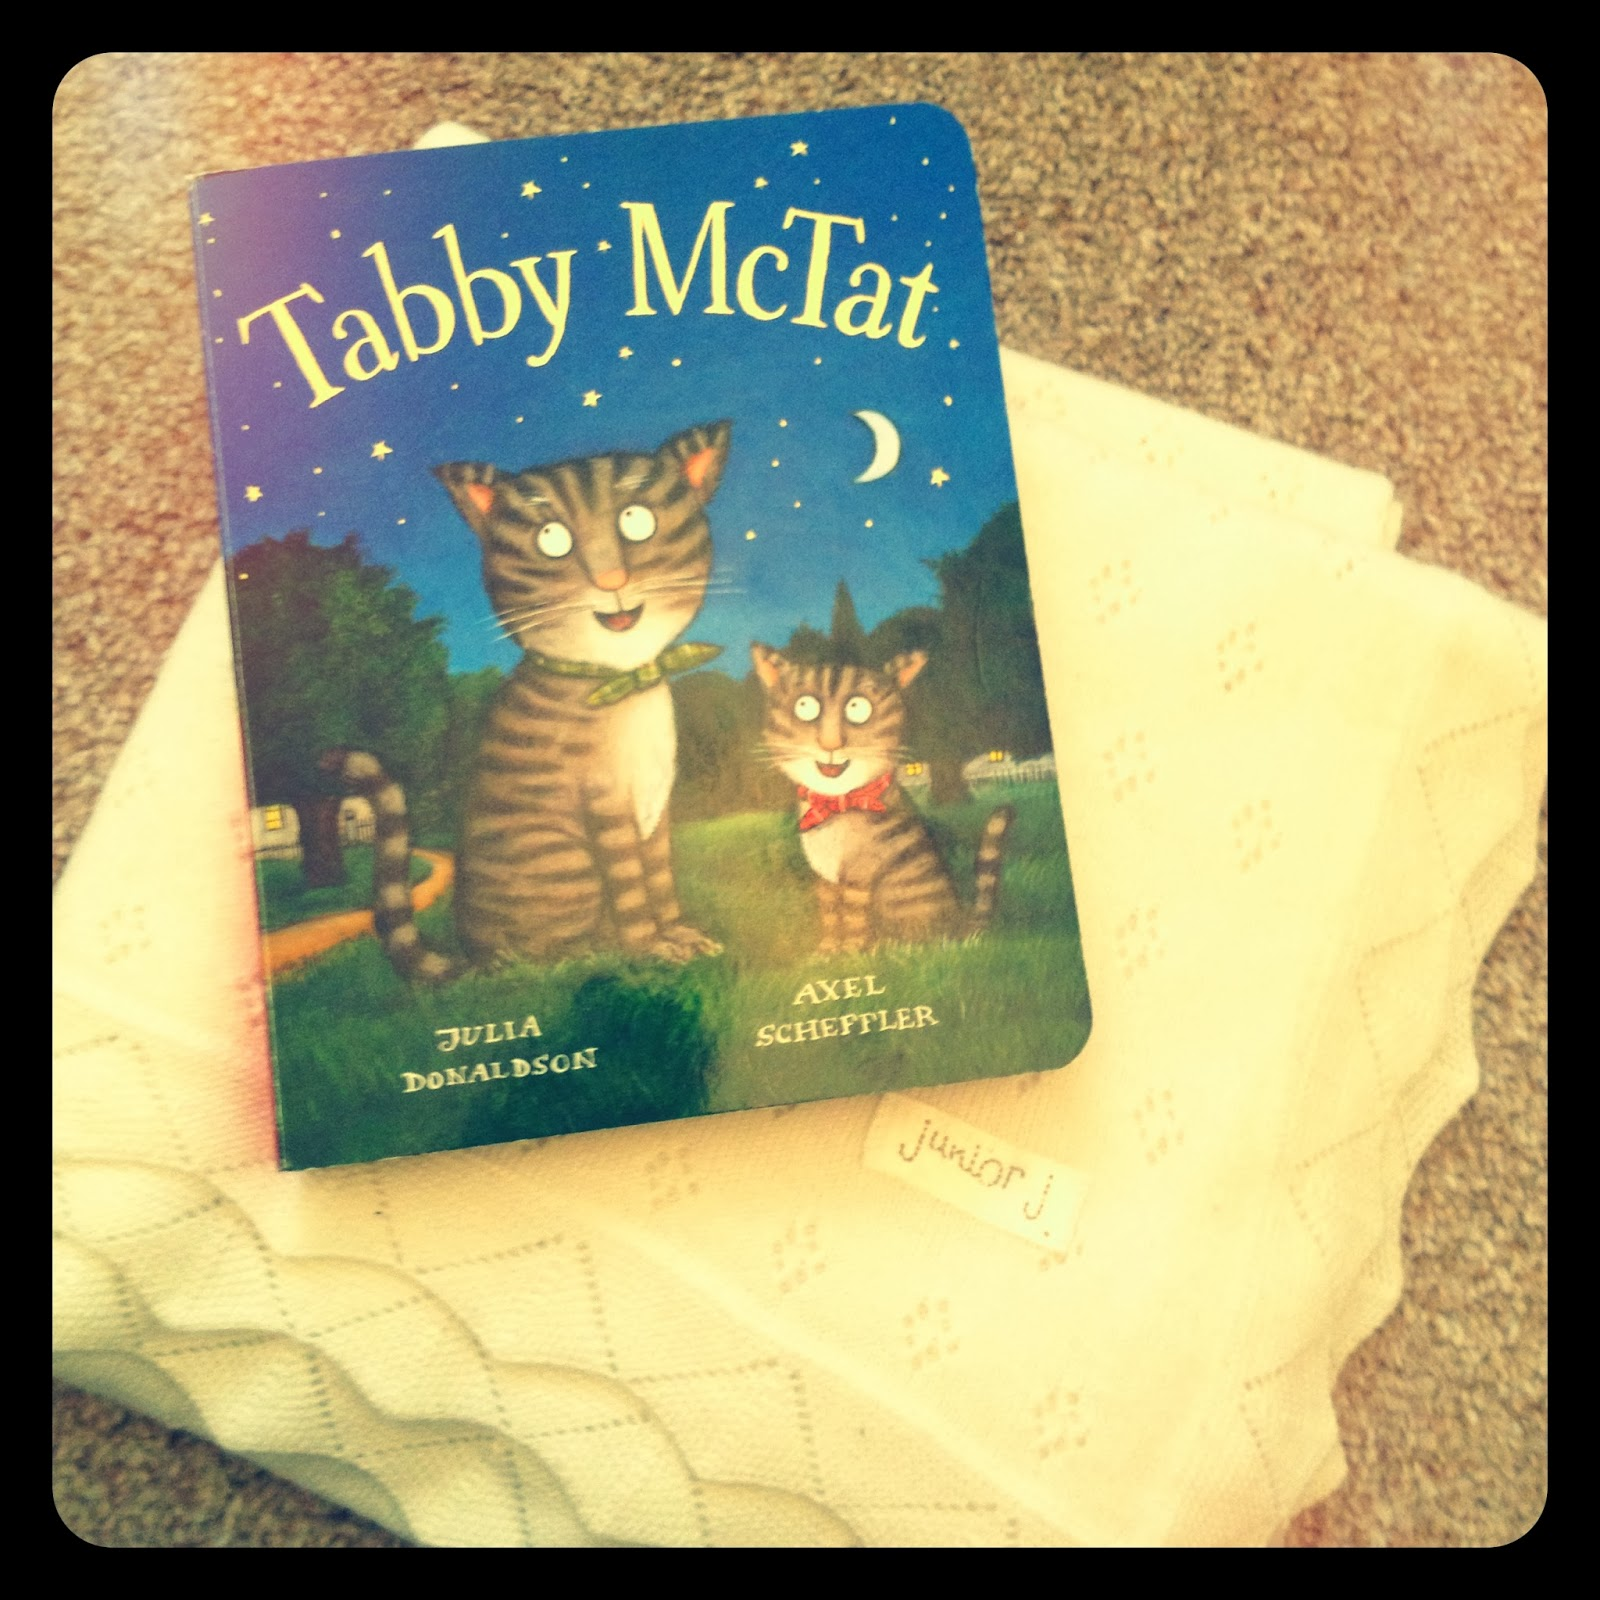 mamasVIB | V. I. BOOKCLUB: Build a classic library for kids (Tabby McTat) ,Tabby McTat | classic baby books | V.I BOOKCLUB | mamasVIB | build a children's library